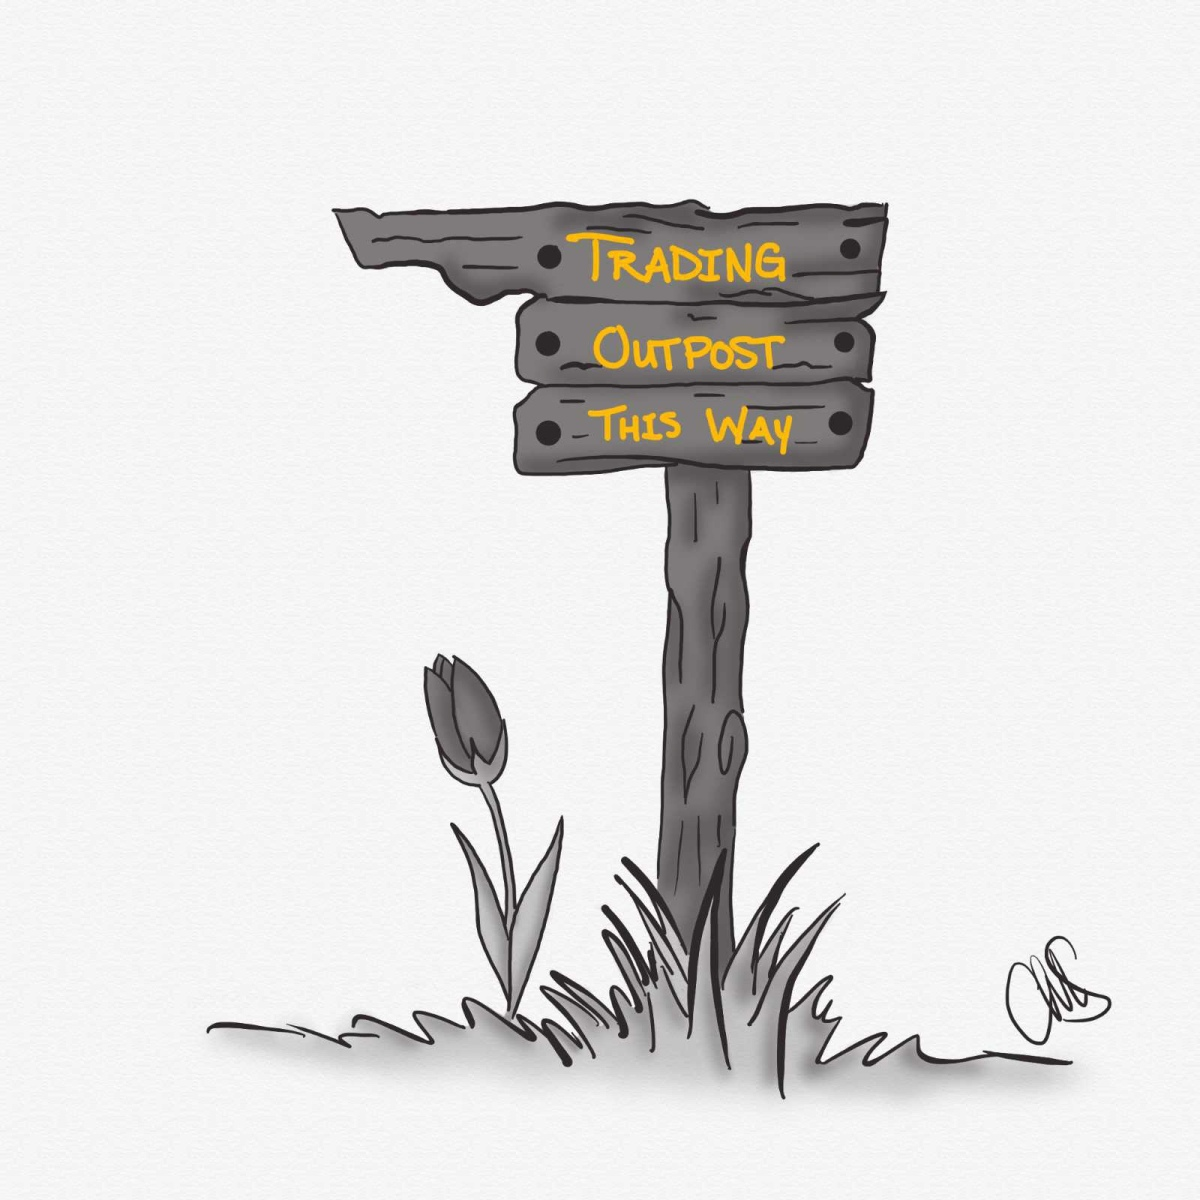 """black and white digital sketch of a """"Trading Outpost This Way"""" sign. The post is drawn to look like a wooden post stuck in the grass, with a tulip growing up out of the ground on the left side. The Text is written in yellow, while the rest of the image is black and white."""